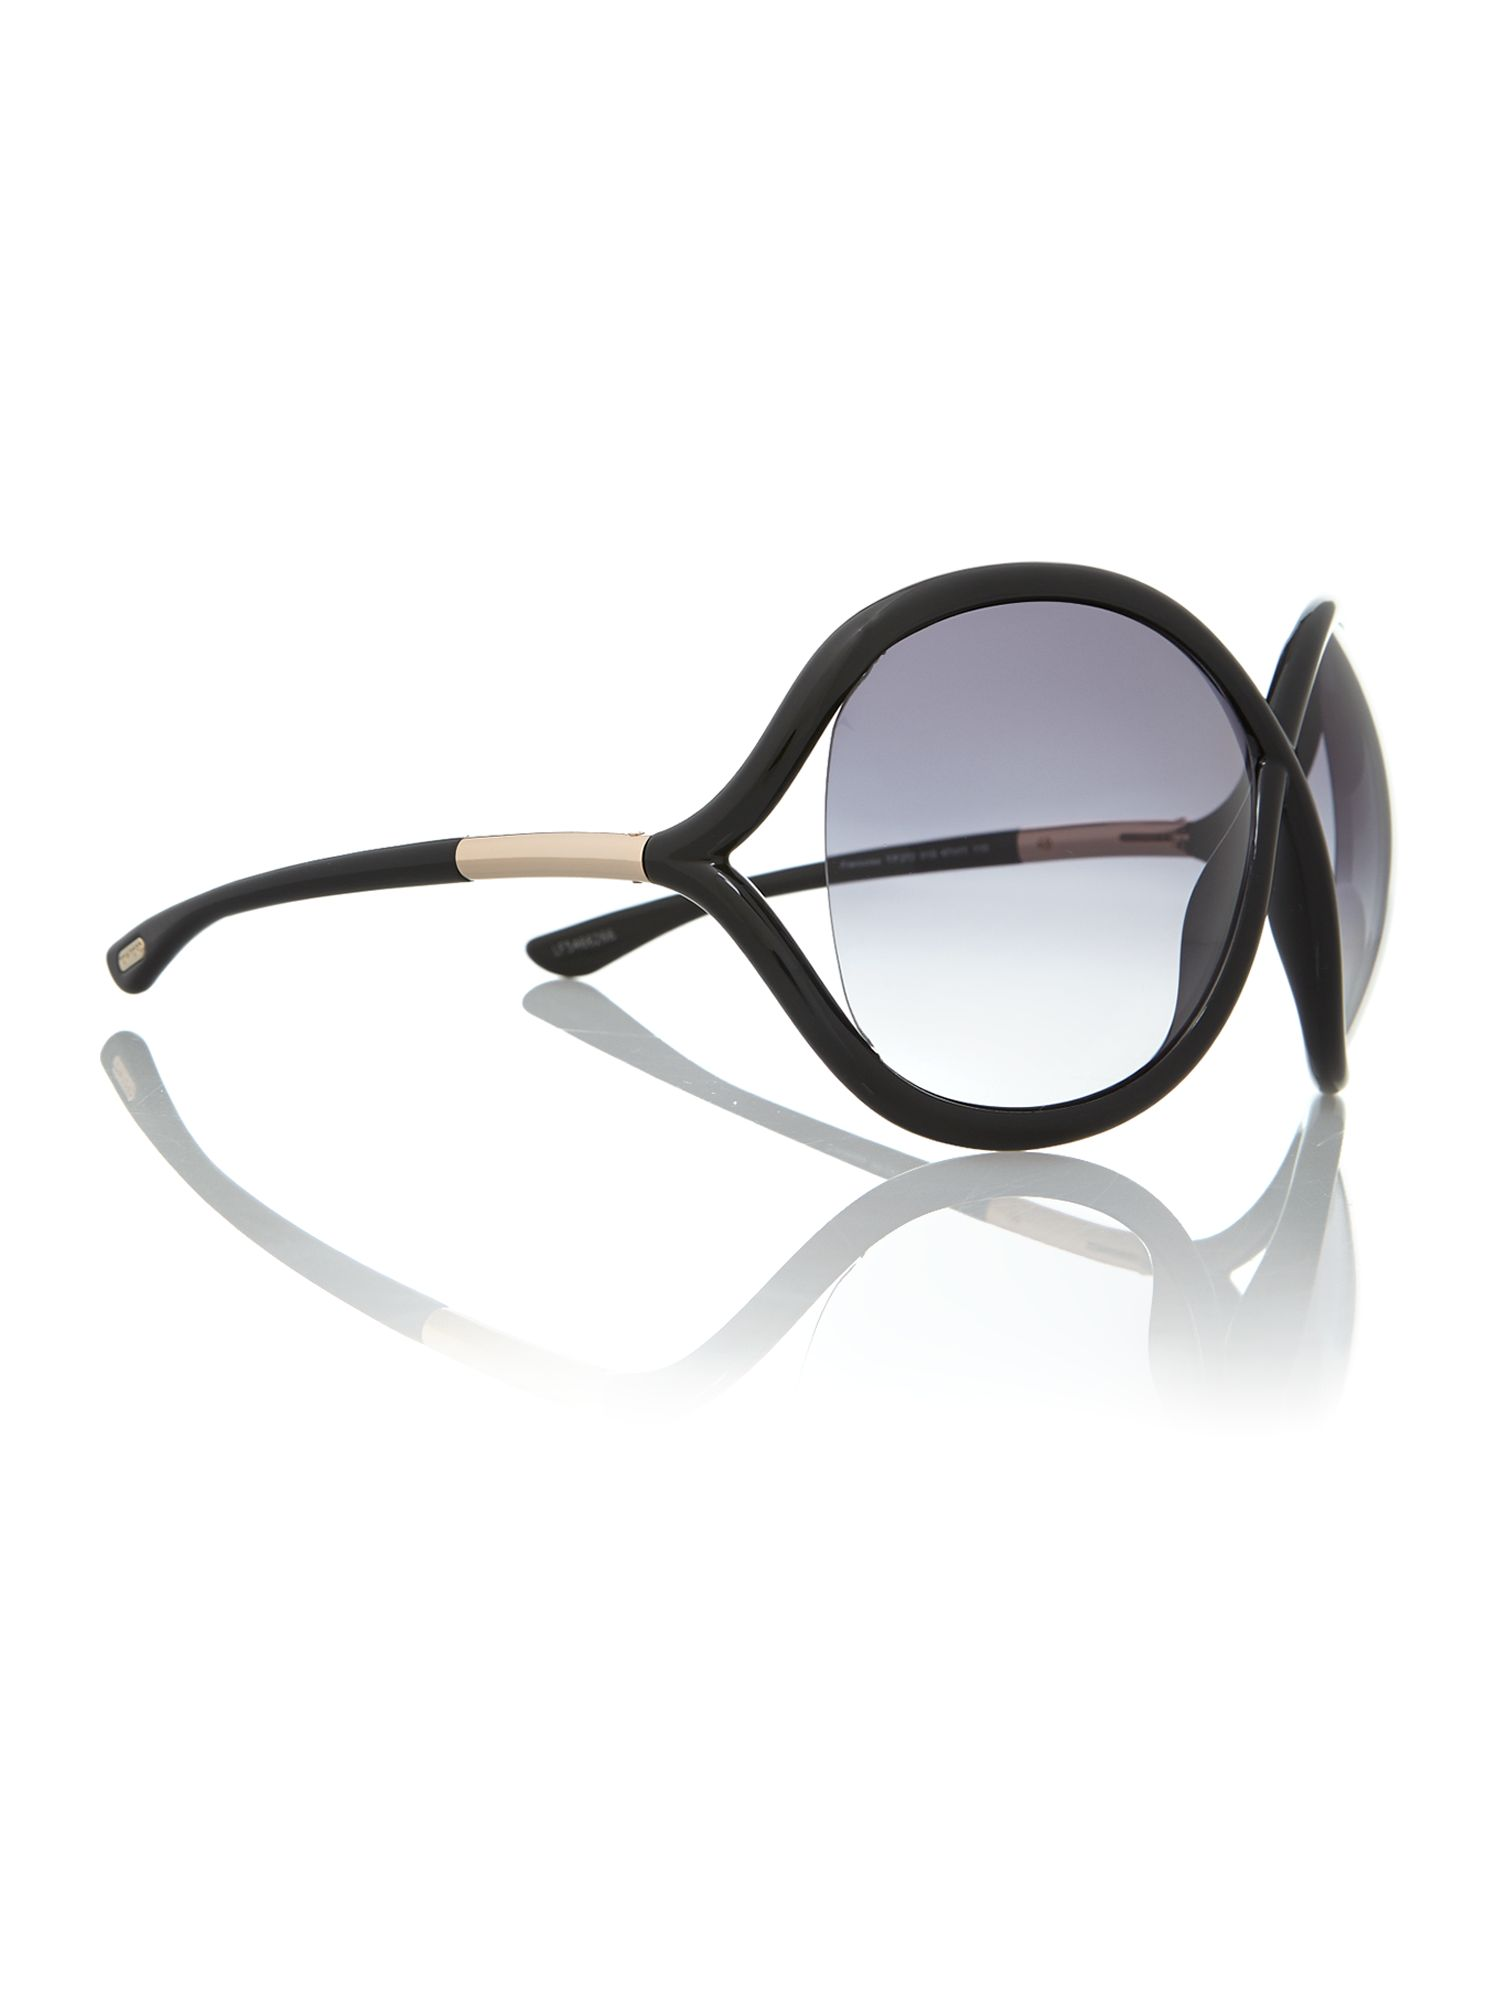 Ladies FT0272 john sunglasses